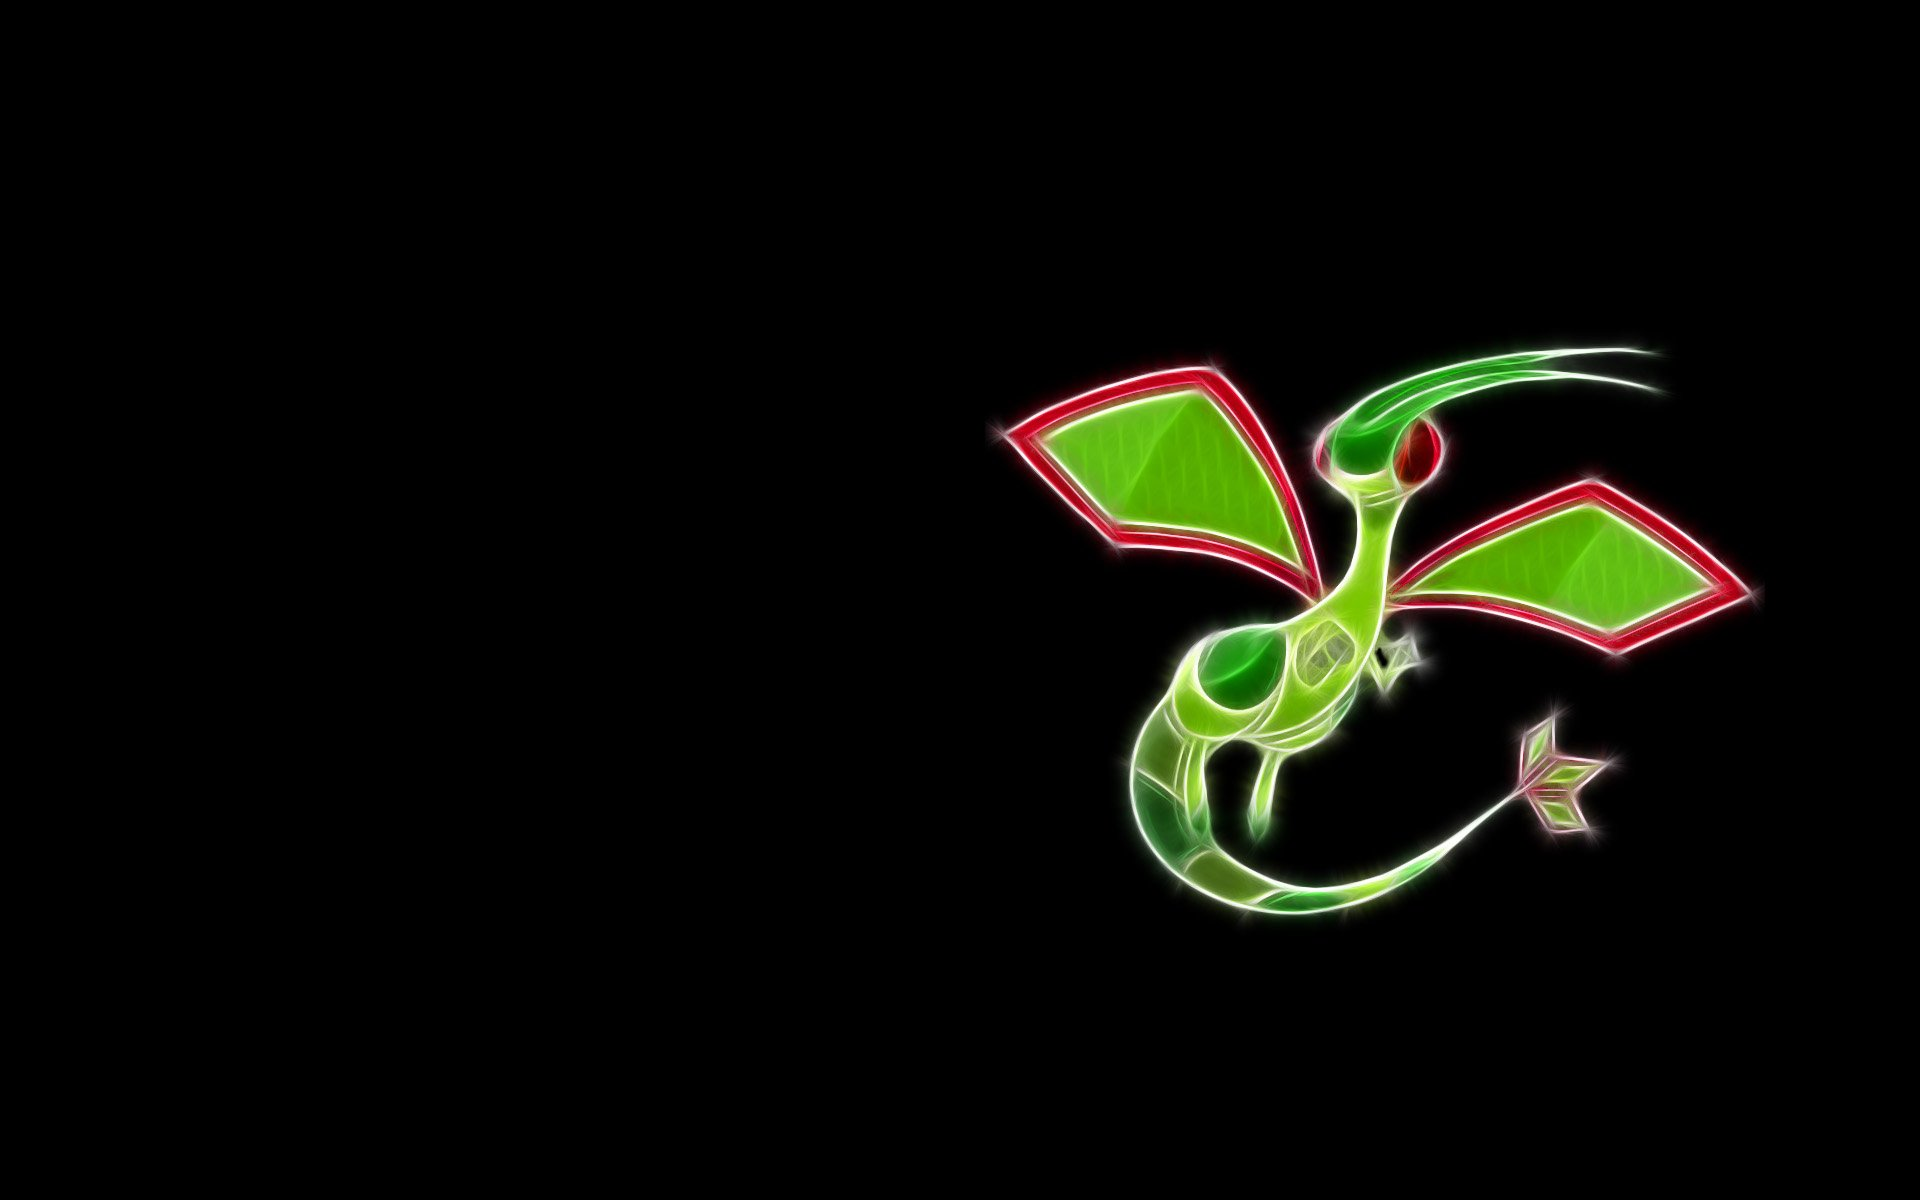 17 Flygon Pokmon HD Wallpapers Background Images   Wallpaper 1920x1200